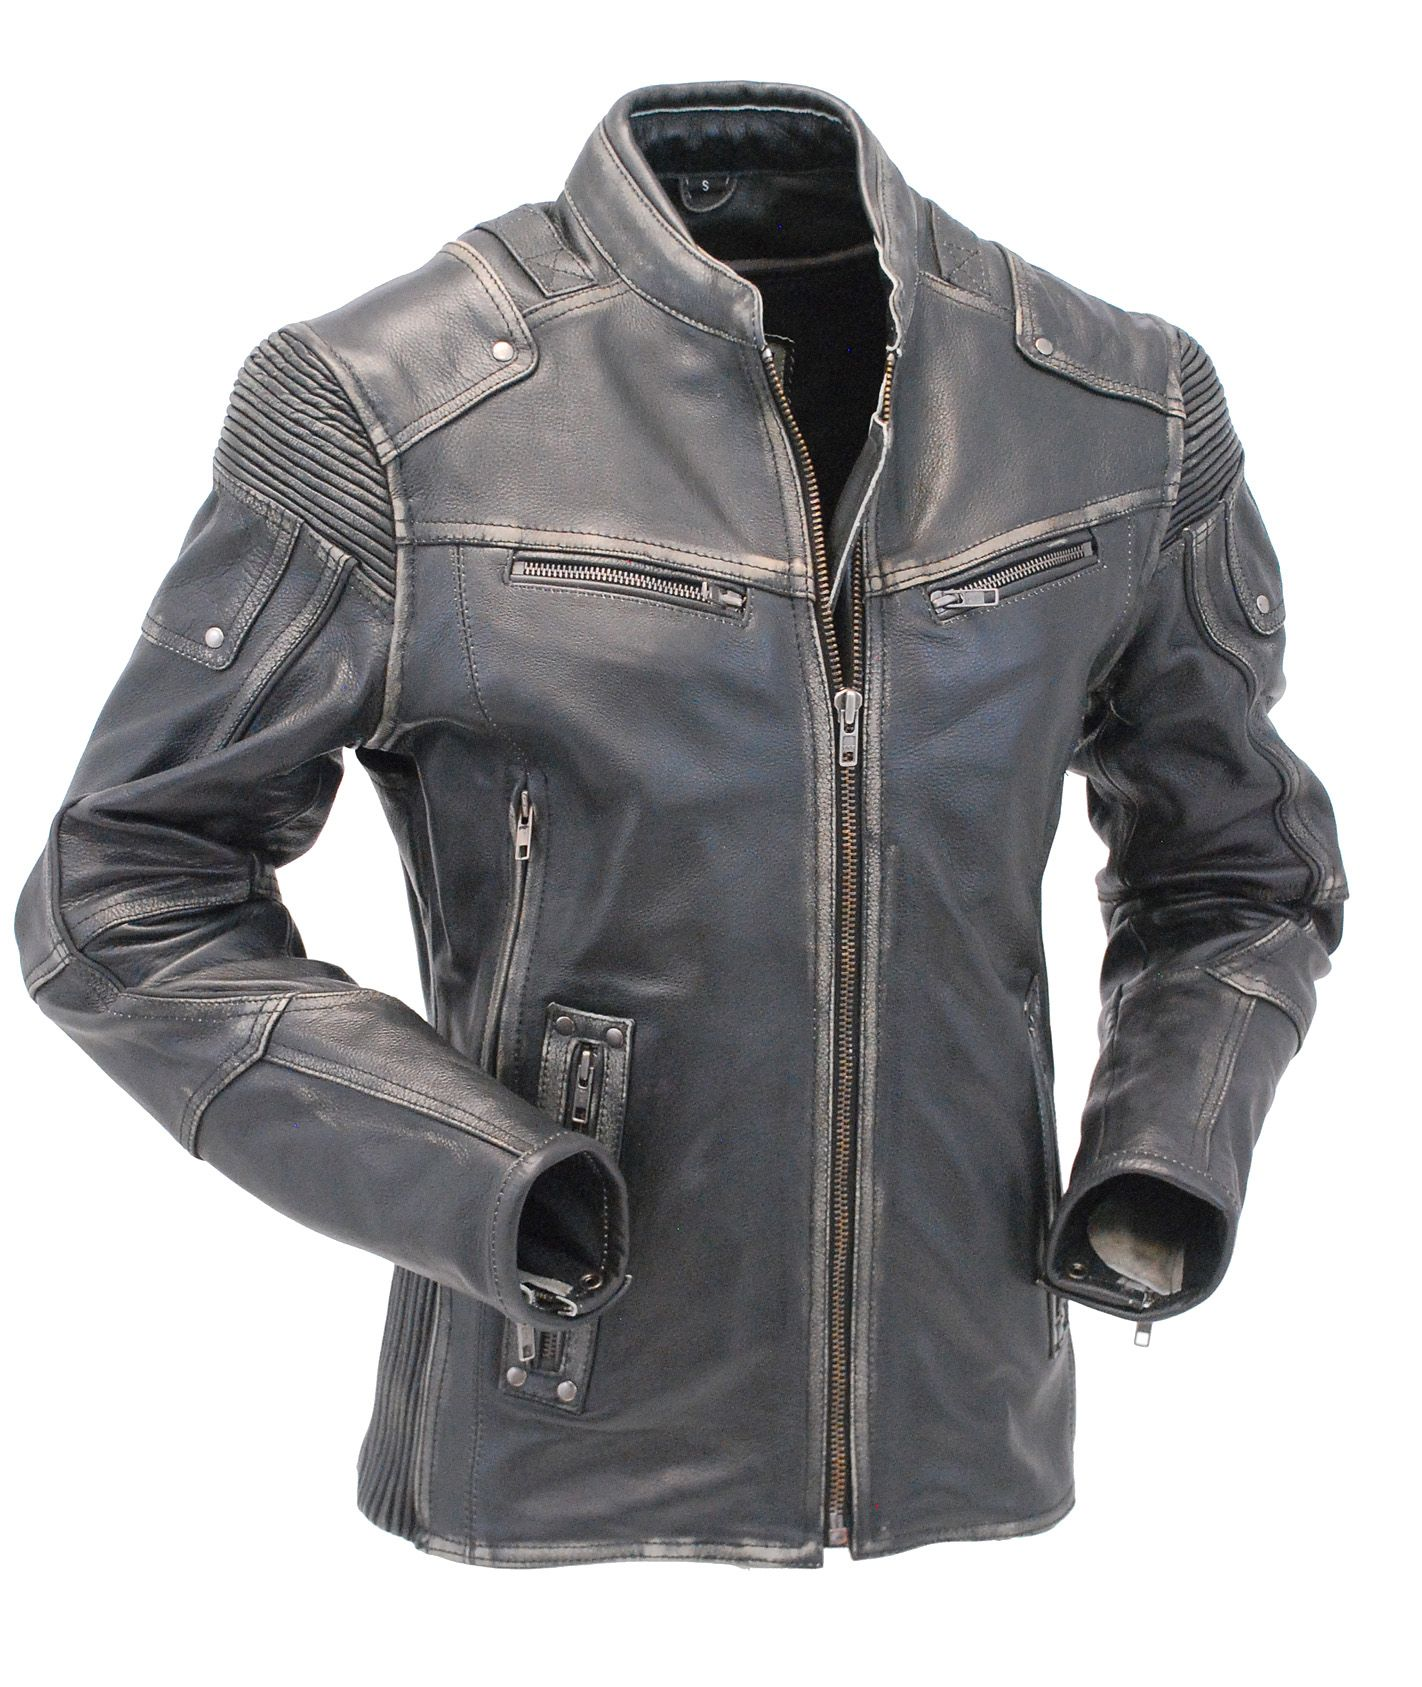 Women S Ultimate Vintage Vented Racer Jacket W Ccw Pockets La68331vgy Distressed Leather Jacket Cafe Racer Leather Jacket Cafe Racer Jacket [ 1687 x 1422 Pixel ]